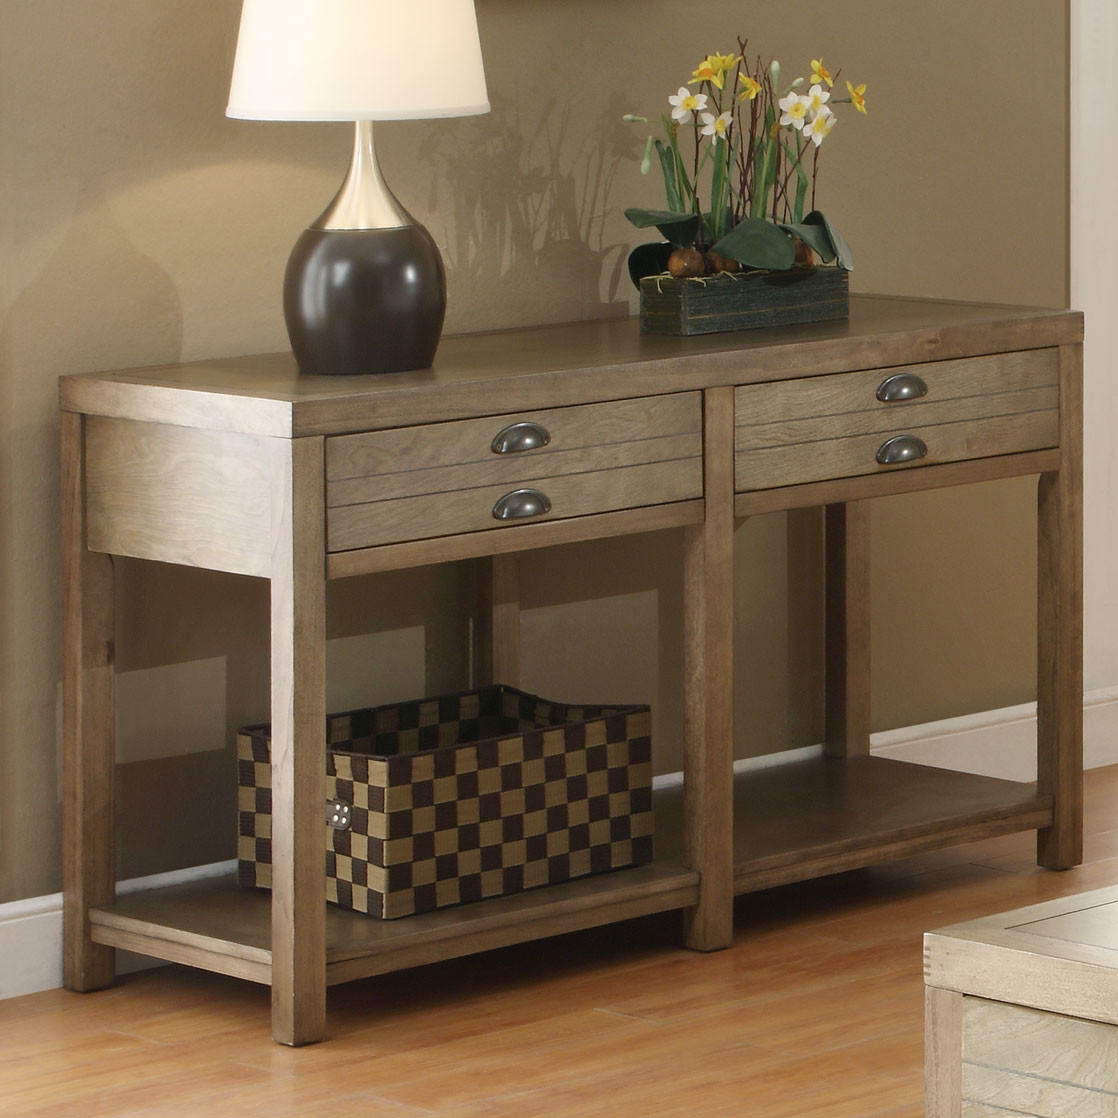 Foyer Table And Bench : Discover different types of foyer tables for your entry